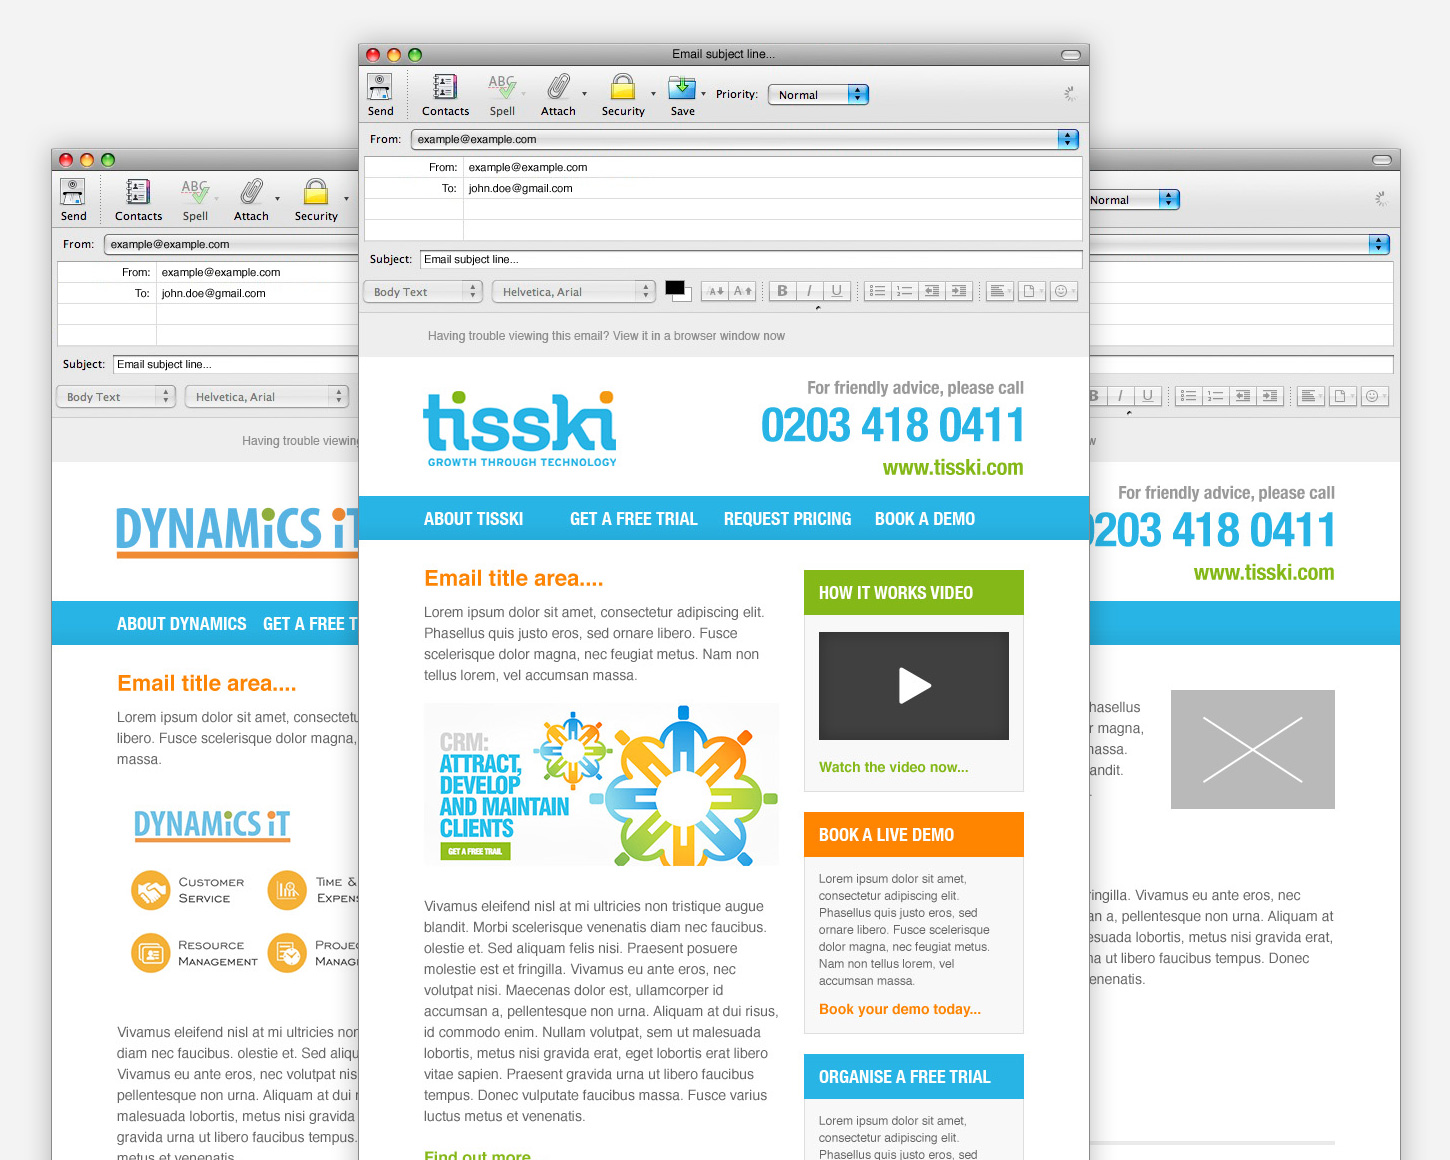 Tisski HTML Email Marketing